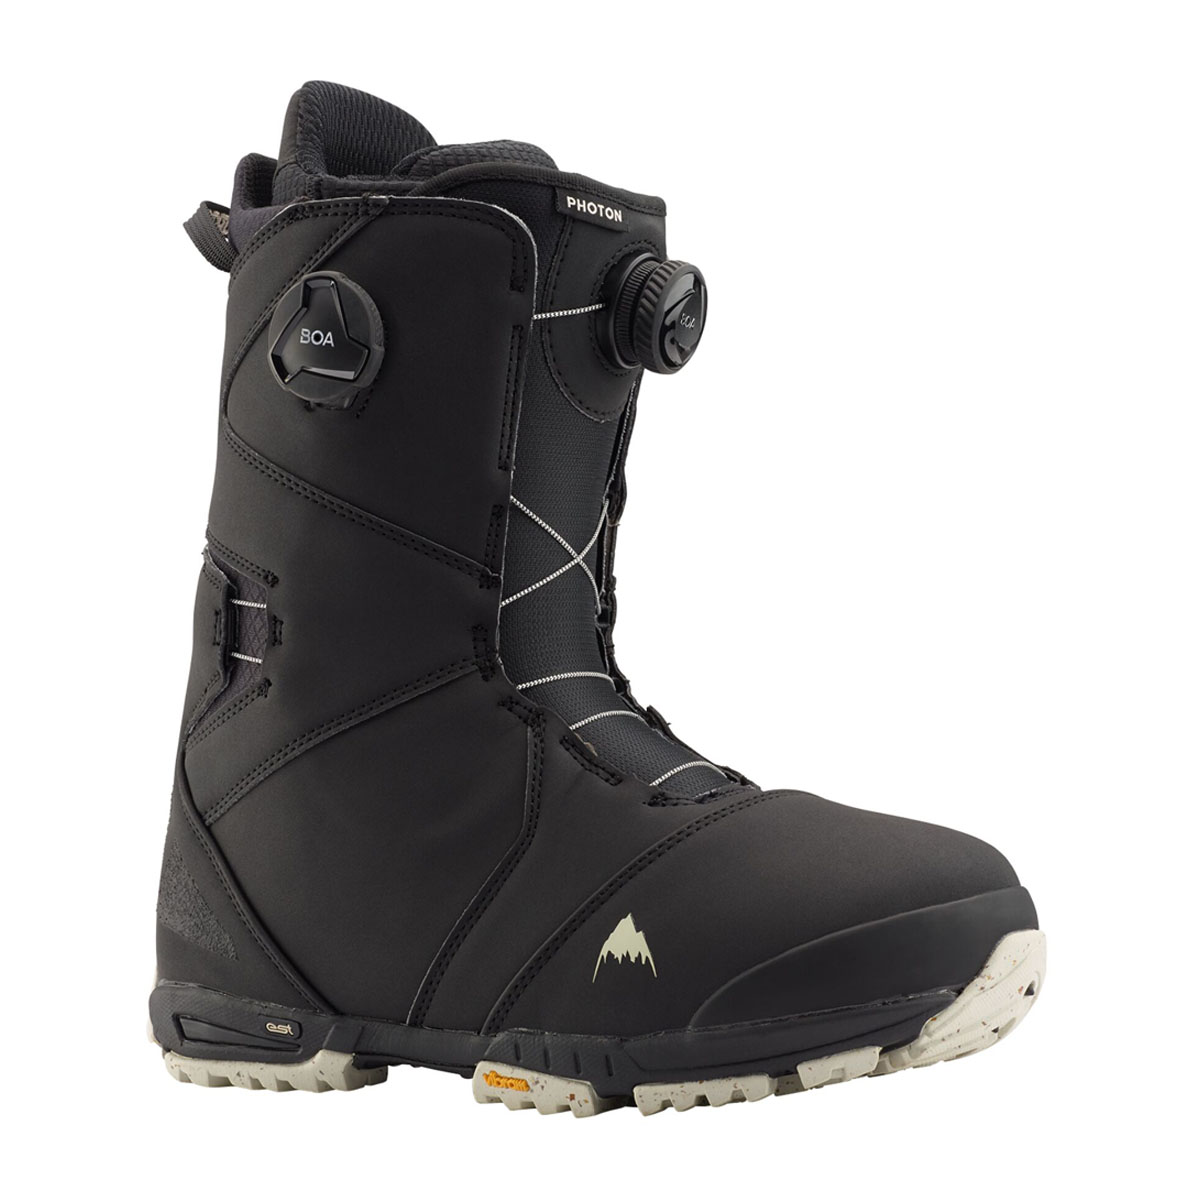 Burton PHOTON BOA 20/21